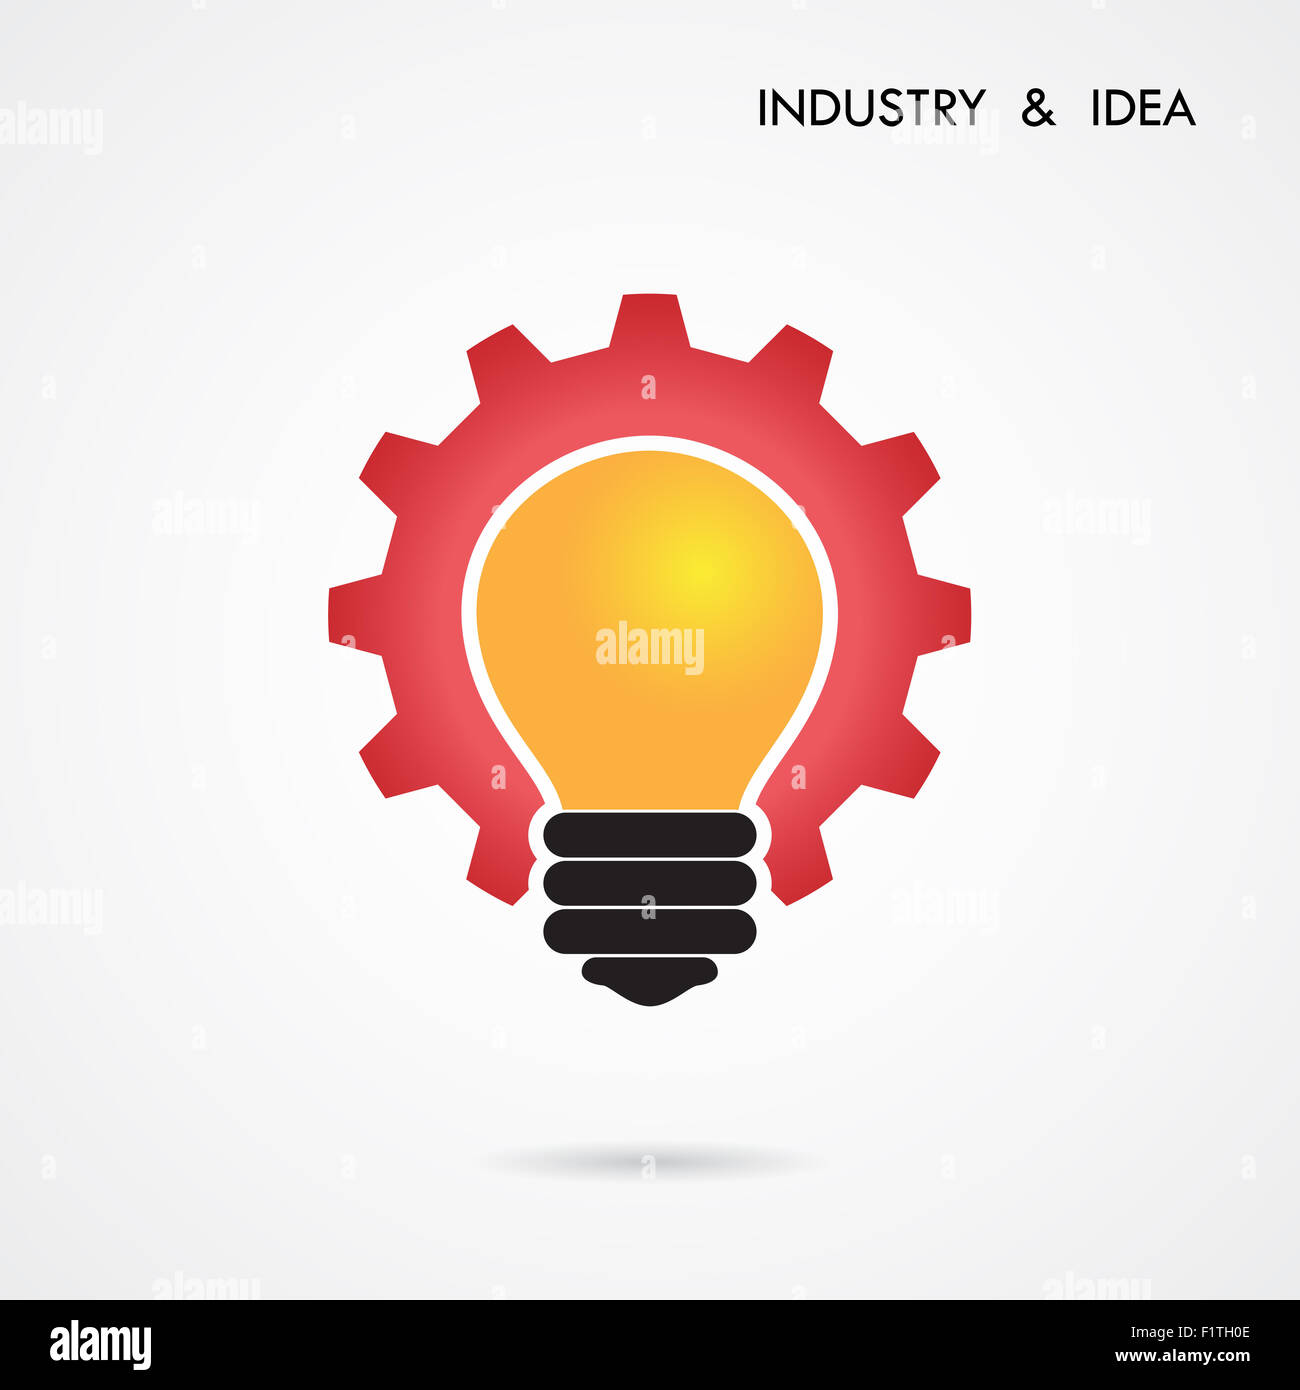 Design banner template - Creative Light Bulb And Gear Abstract Design Banner Template Corporate Business Industrial Creative Logotype Symbol